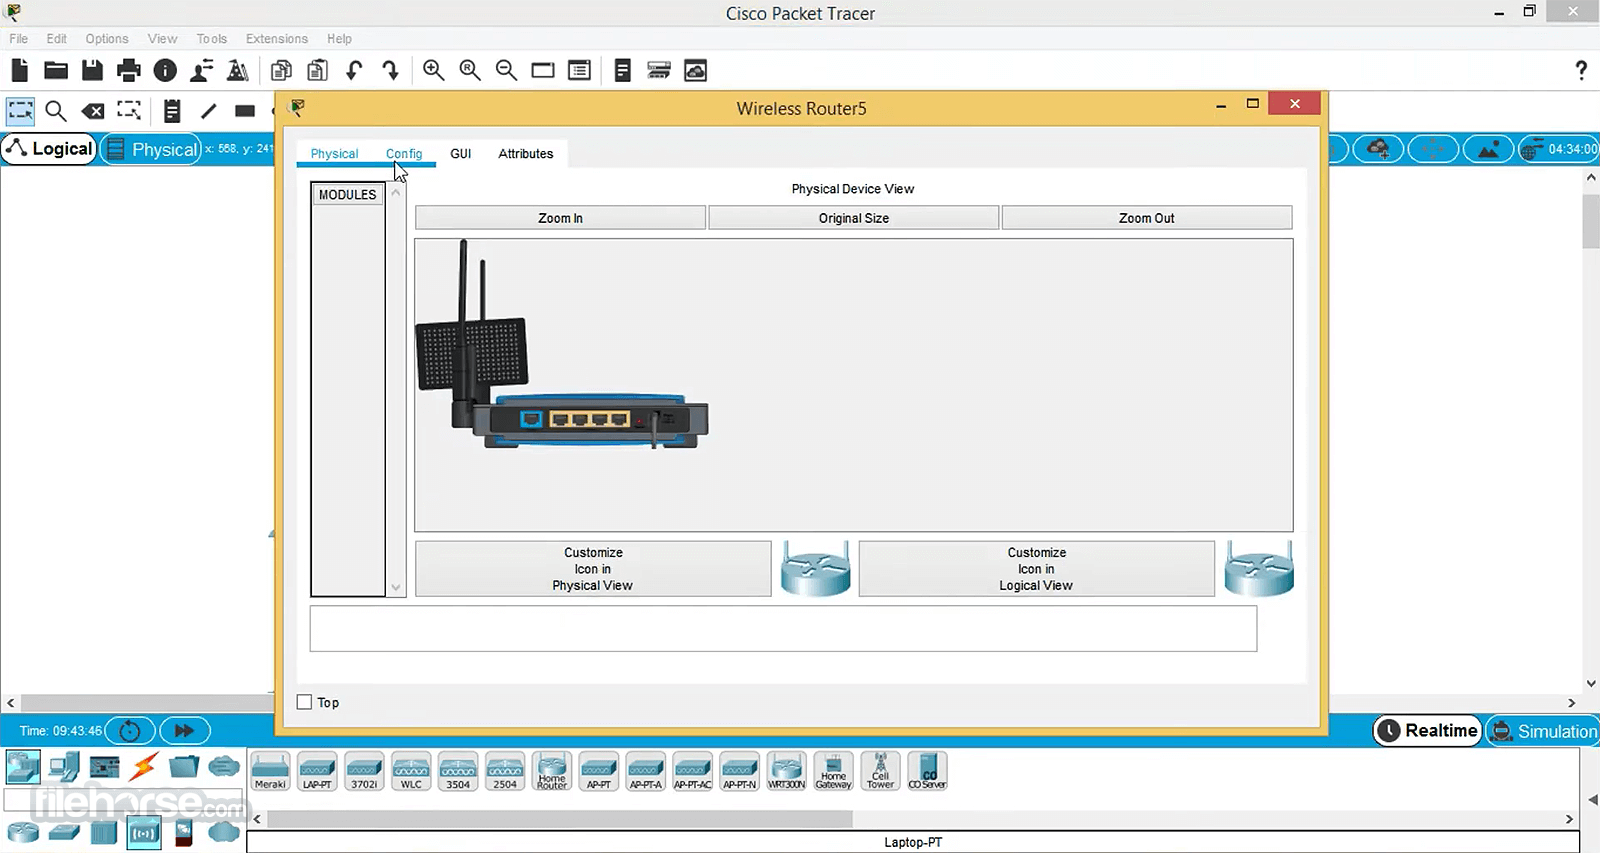 cisco packet tracer gratuit clubic